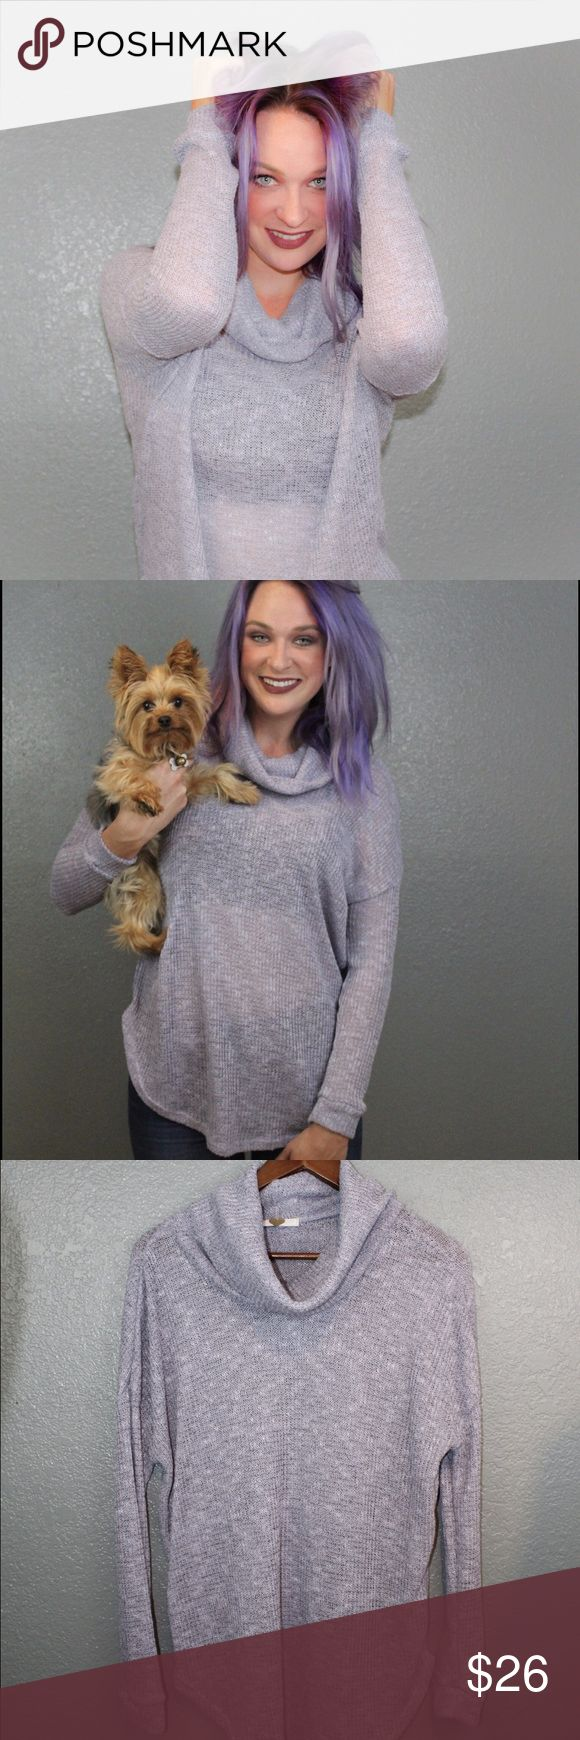 Lilac sweater Lilac soft light sweater made by Lush clothing ! This sweater is a must have this season :) Lush Sweaters Cowl & Turtlenecks